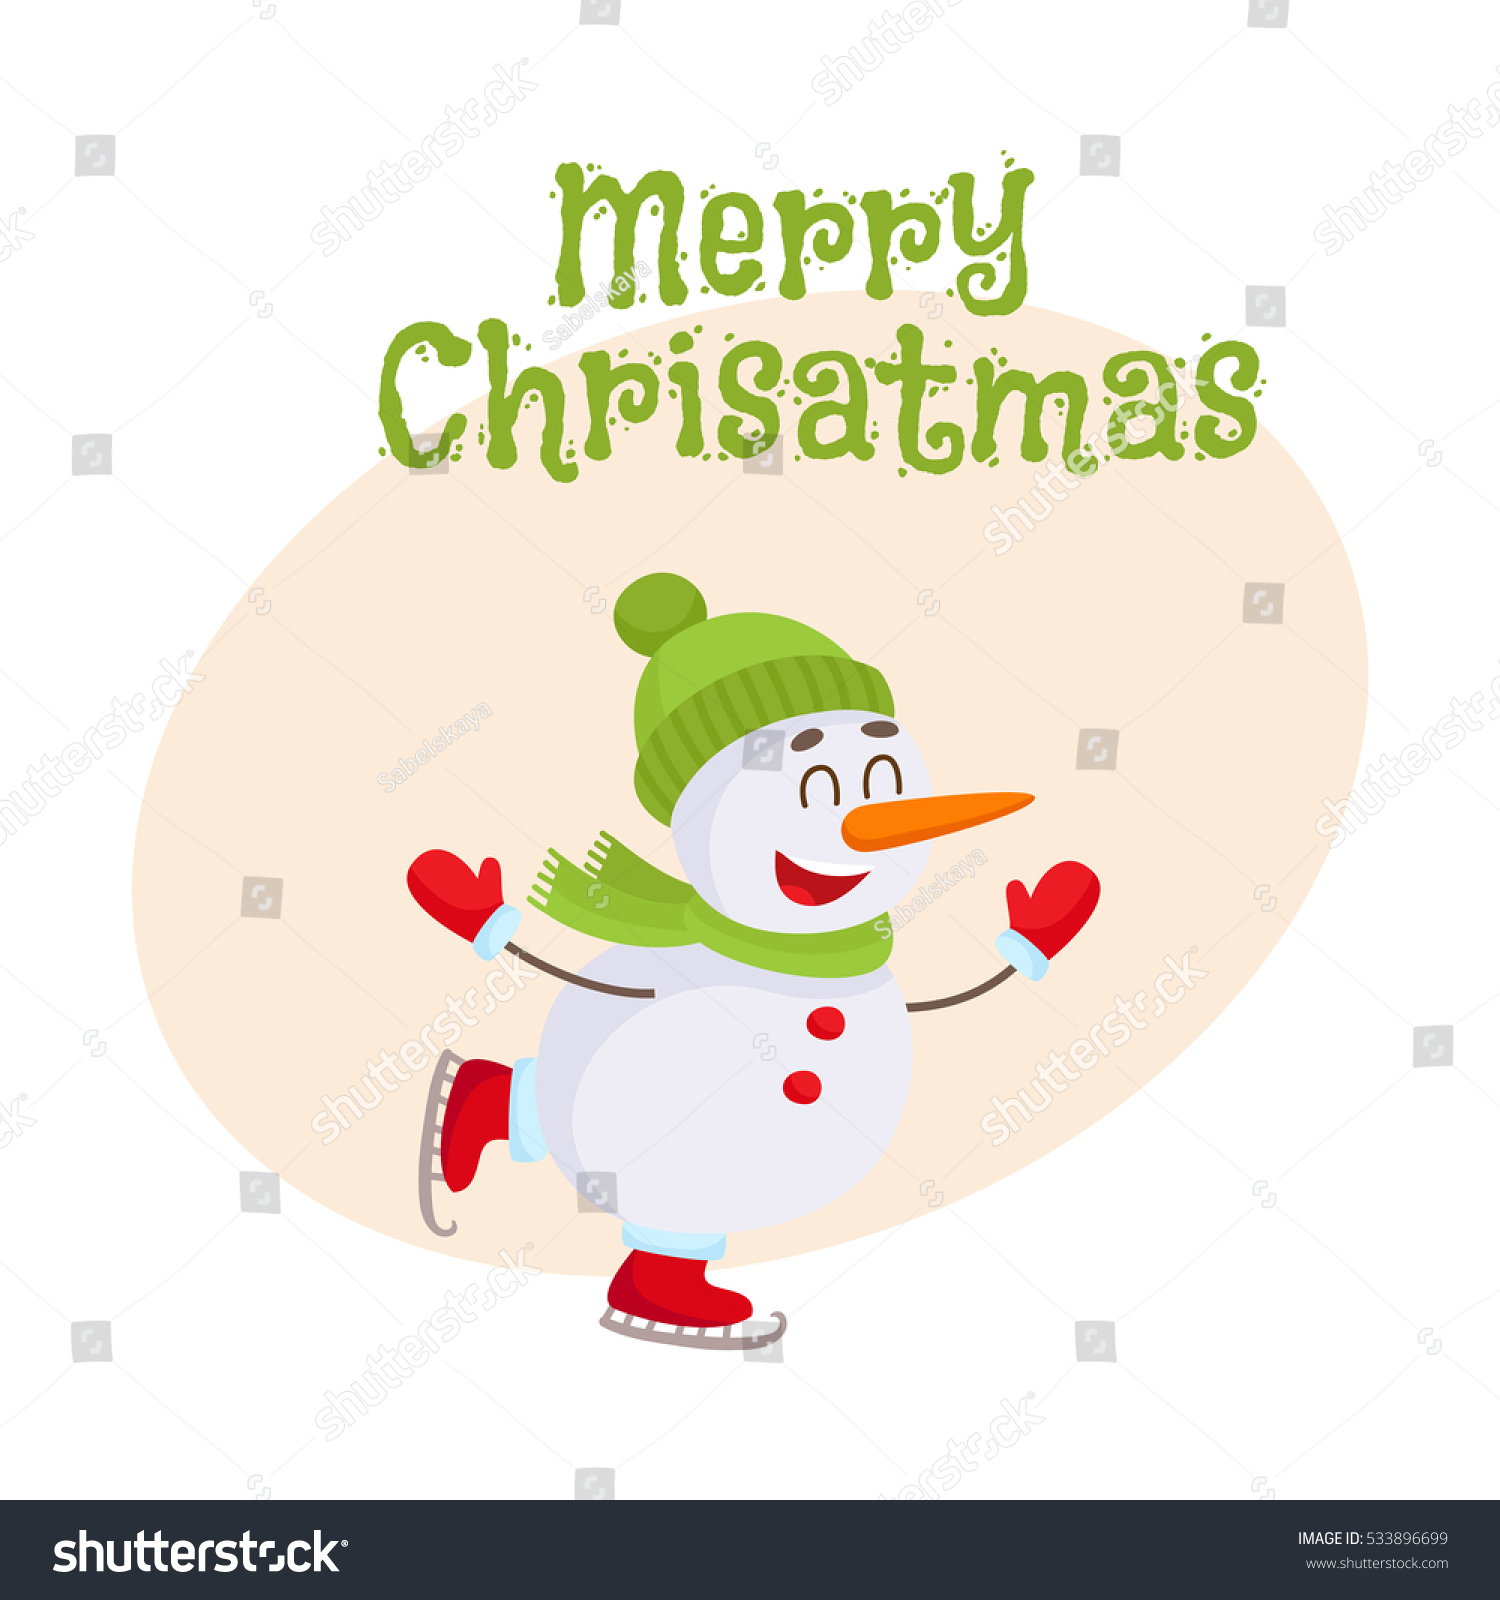 Merry christmas greeting card template cute stock vector 533896699 merry christmas greeting card template with cute and funny little snowman ice skating happily cartoon m4hsunfo Gallery